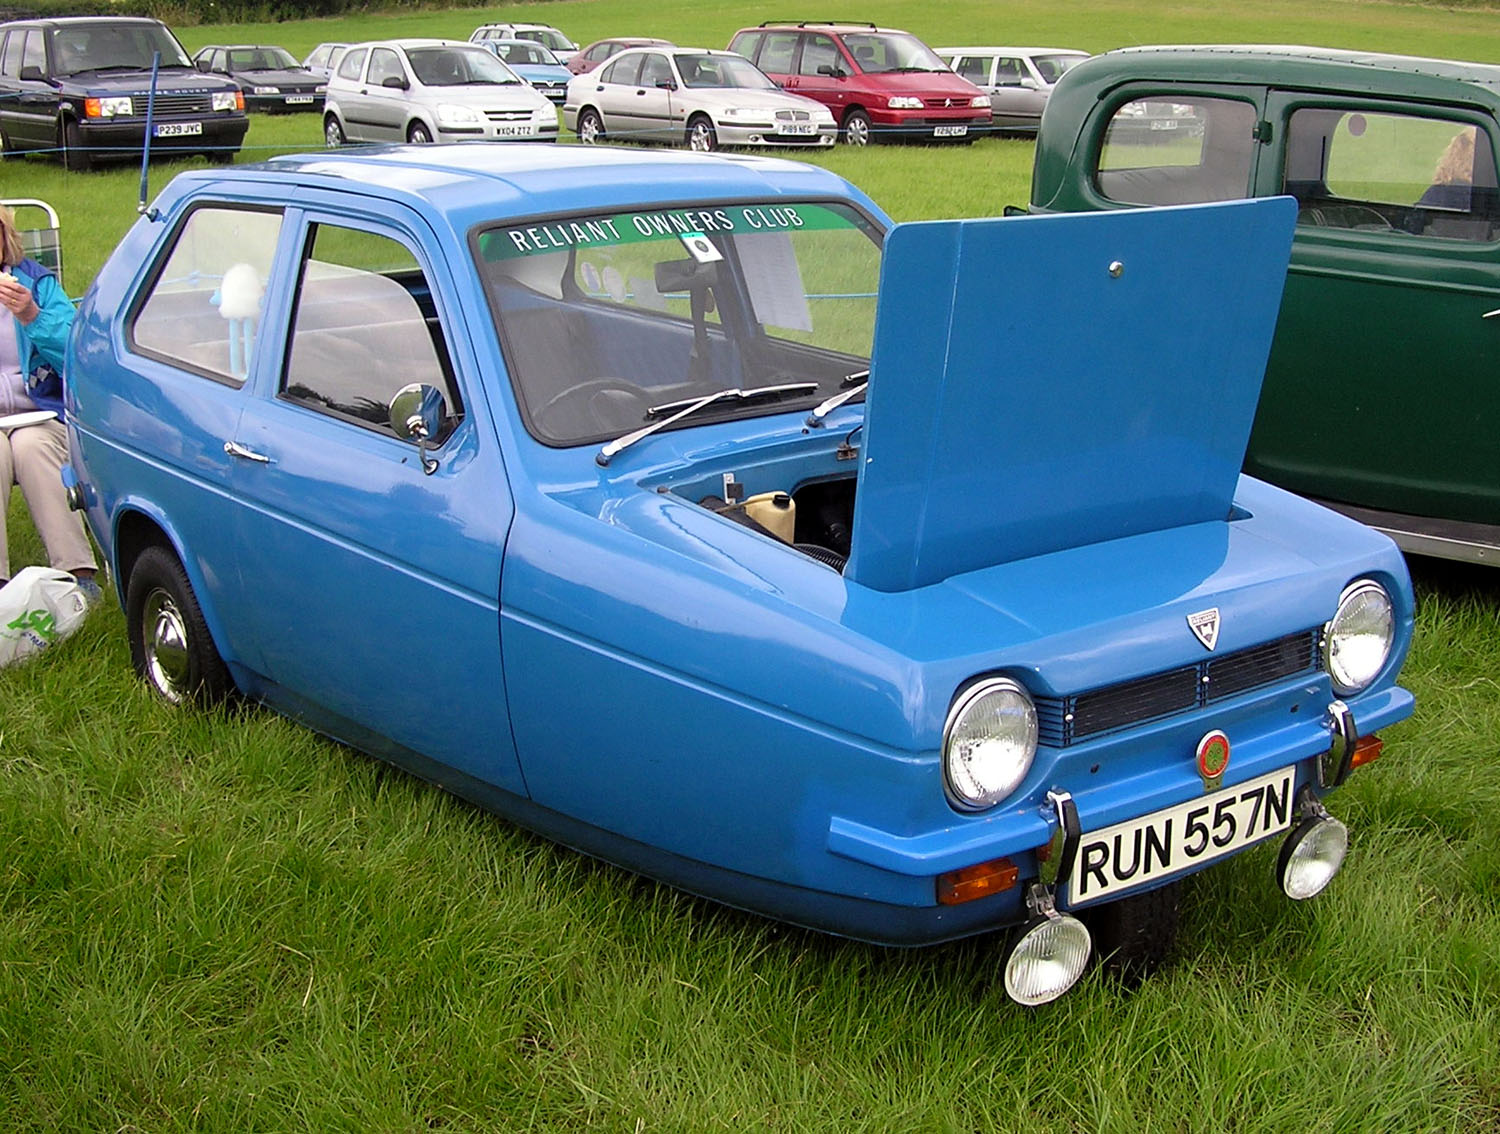 File:1974.reliant.robin.arp.jpg - Wikimedia Commons